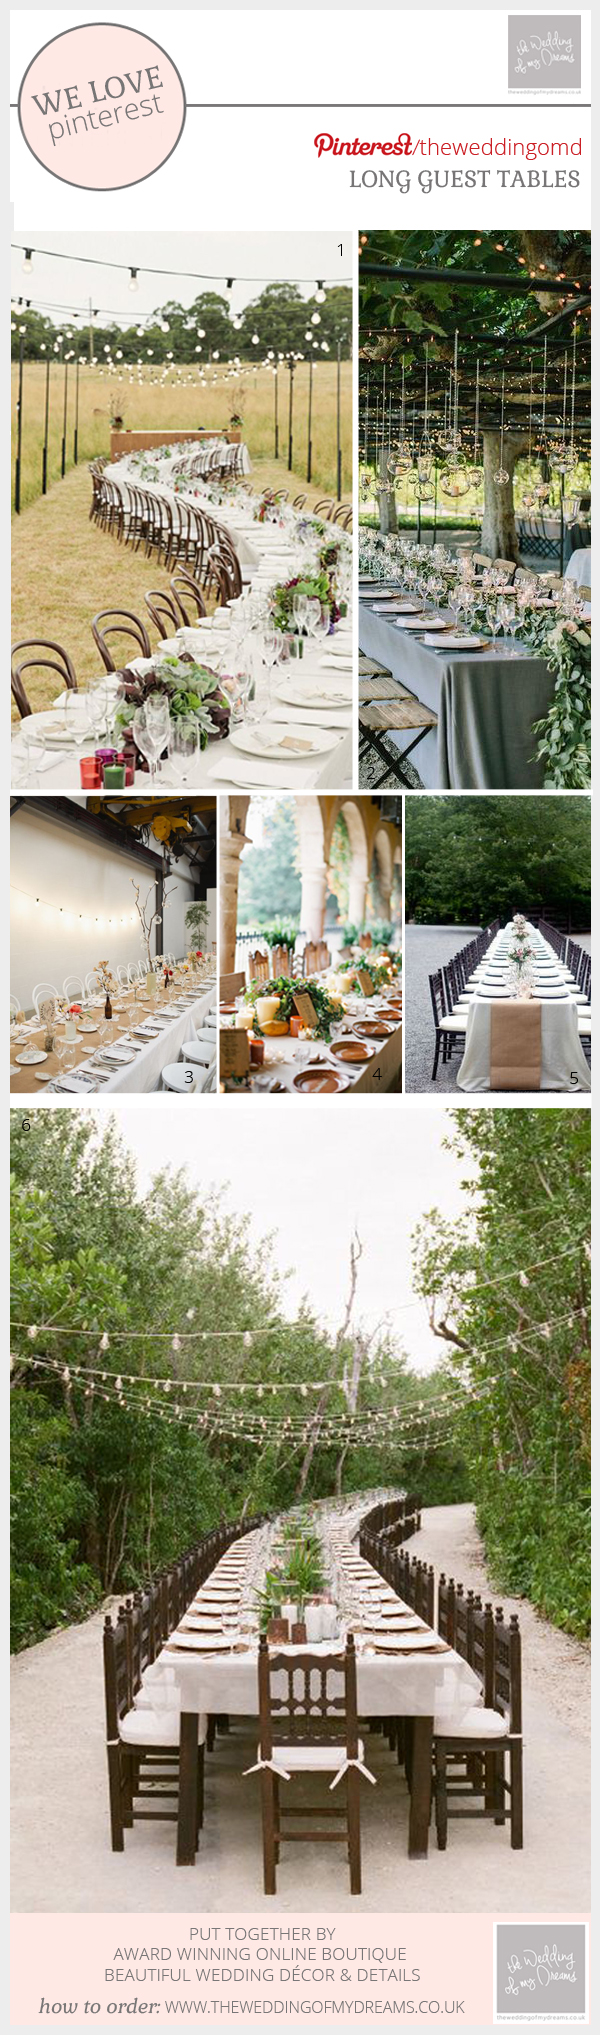 Long wedding guest tables ideas